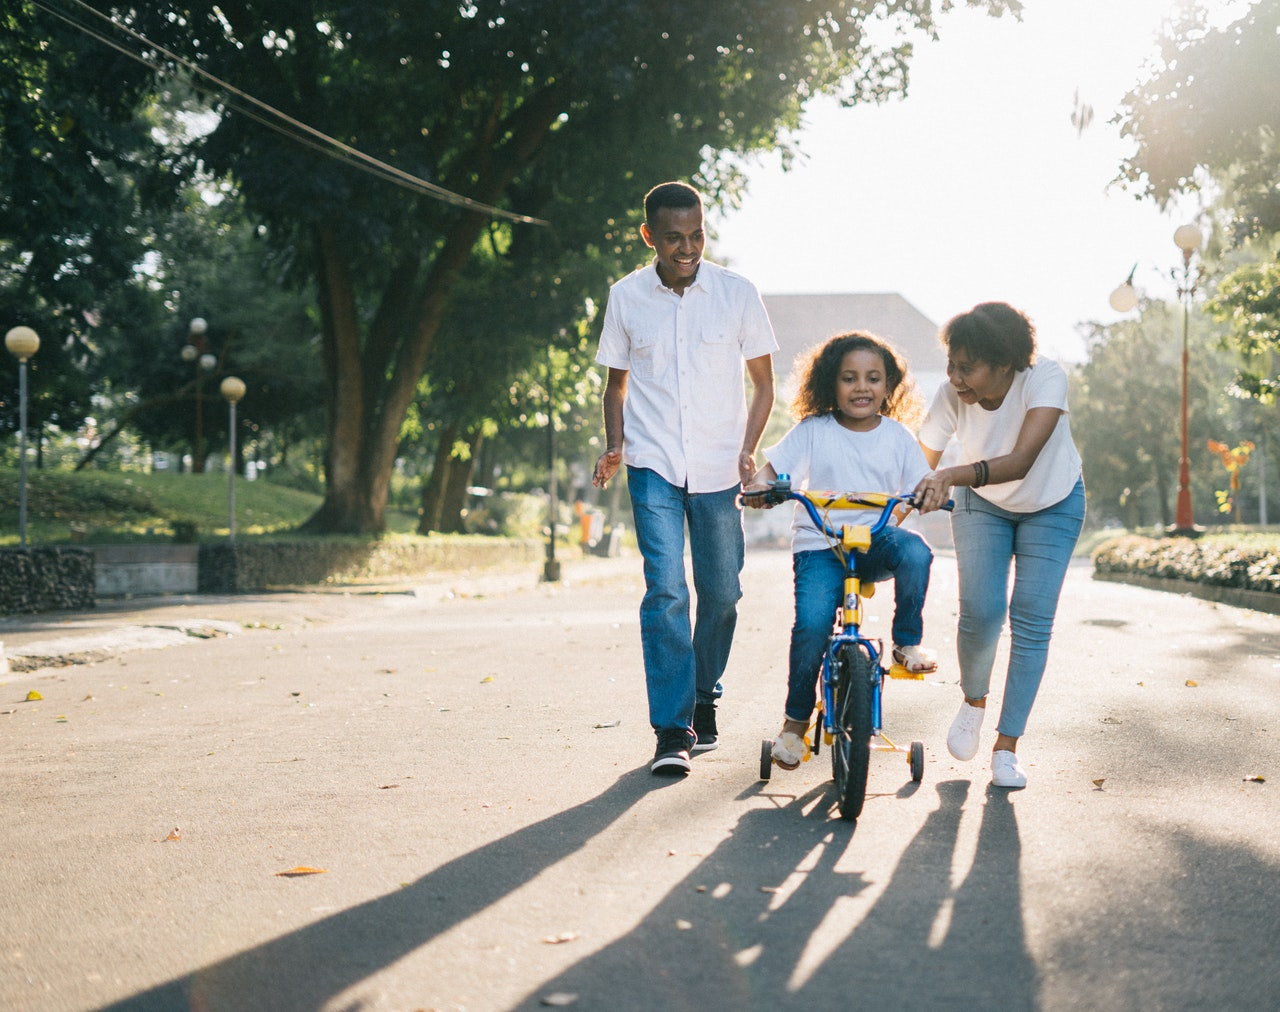 mother, father, and child on bicycle